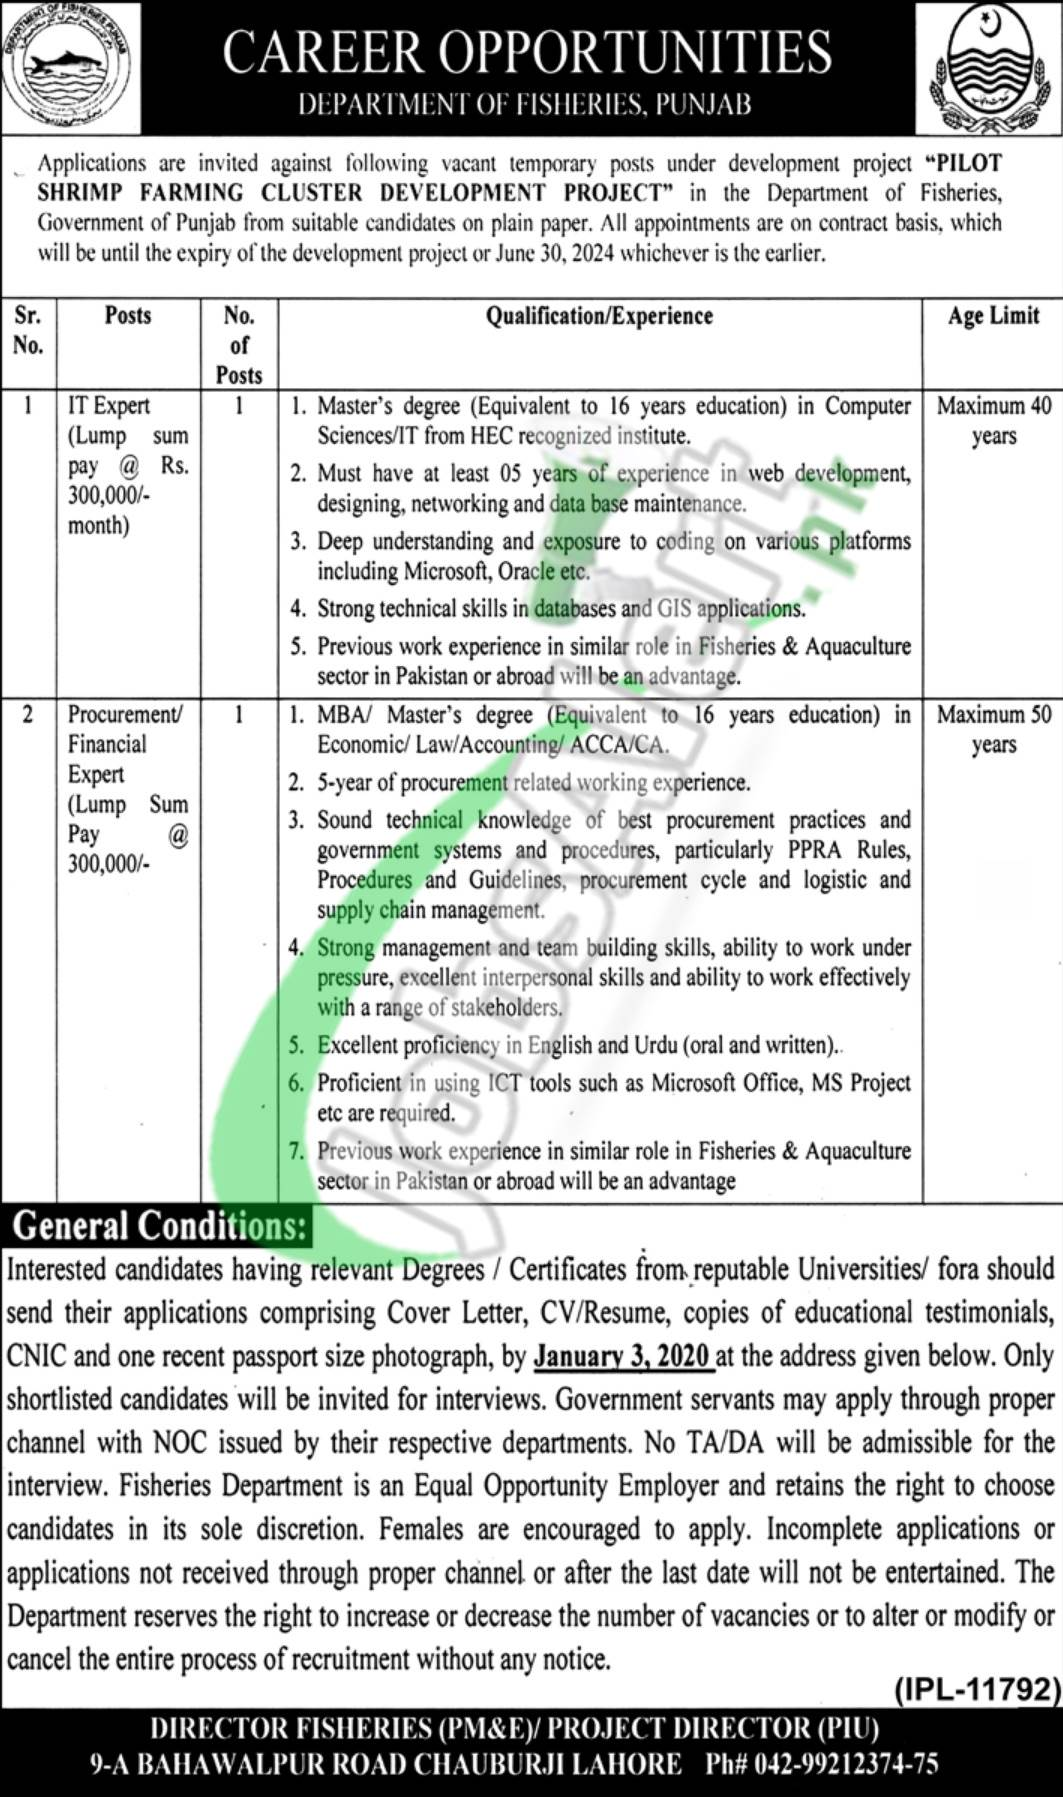 Career Opportunities Department of Fisheries Punajb